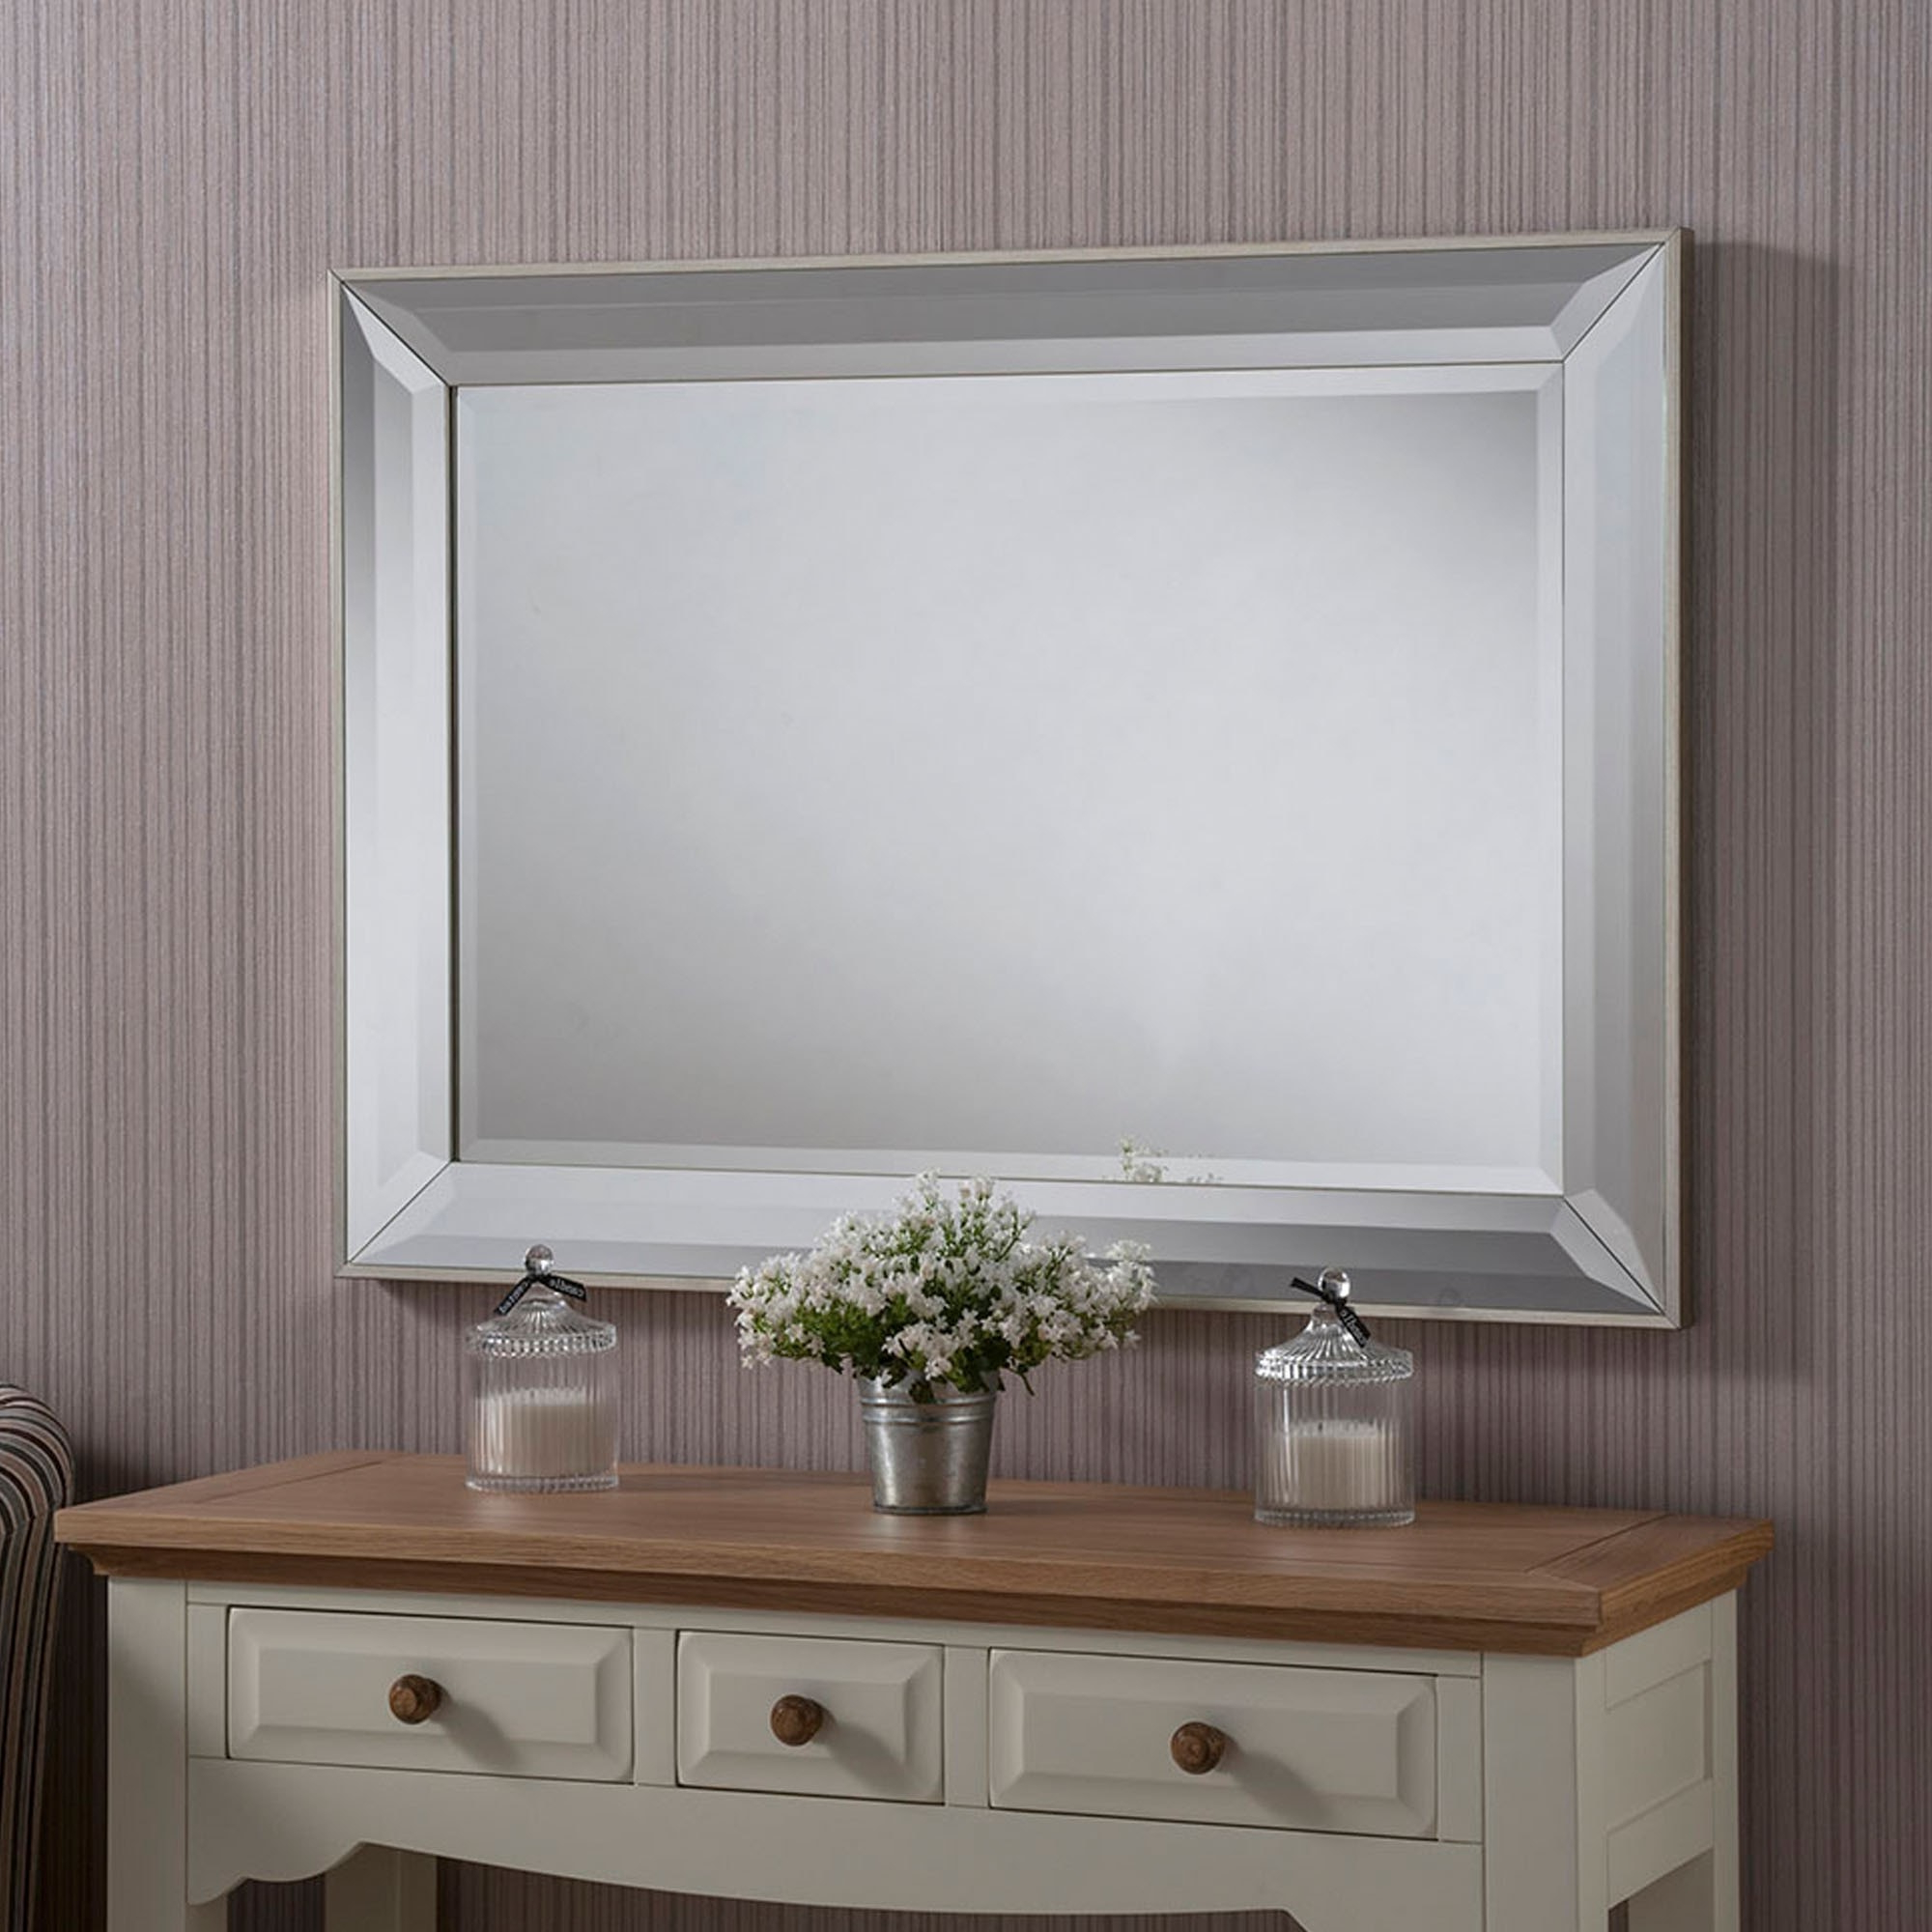 Widely Used Modern & Contemporary Beveled Wall Mirrors For Contemporary Beveled Mirrored Wall Mirror (View 20 of 20)